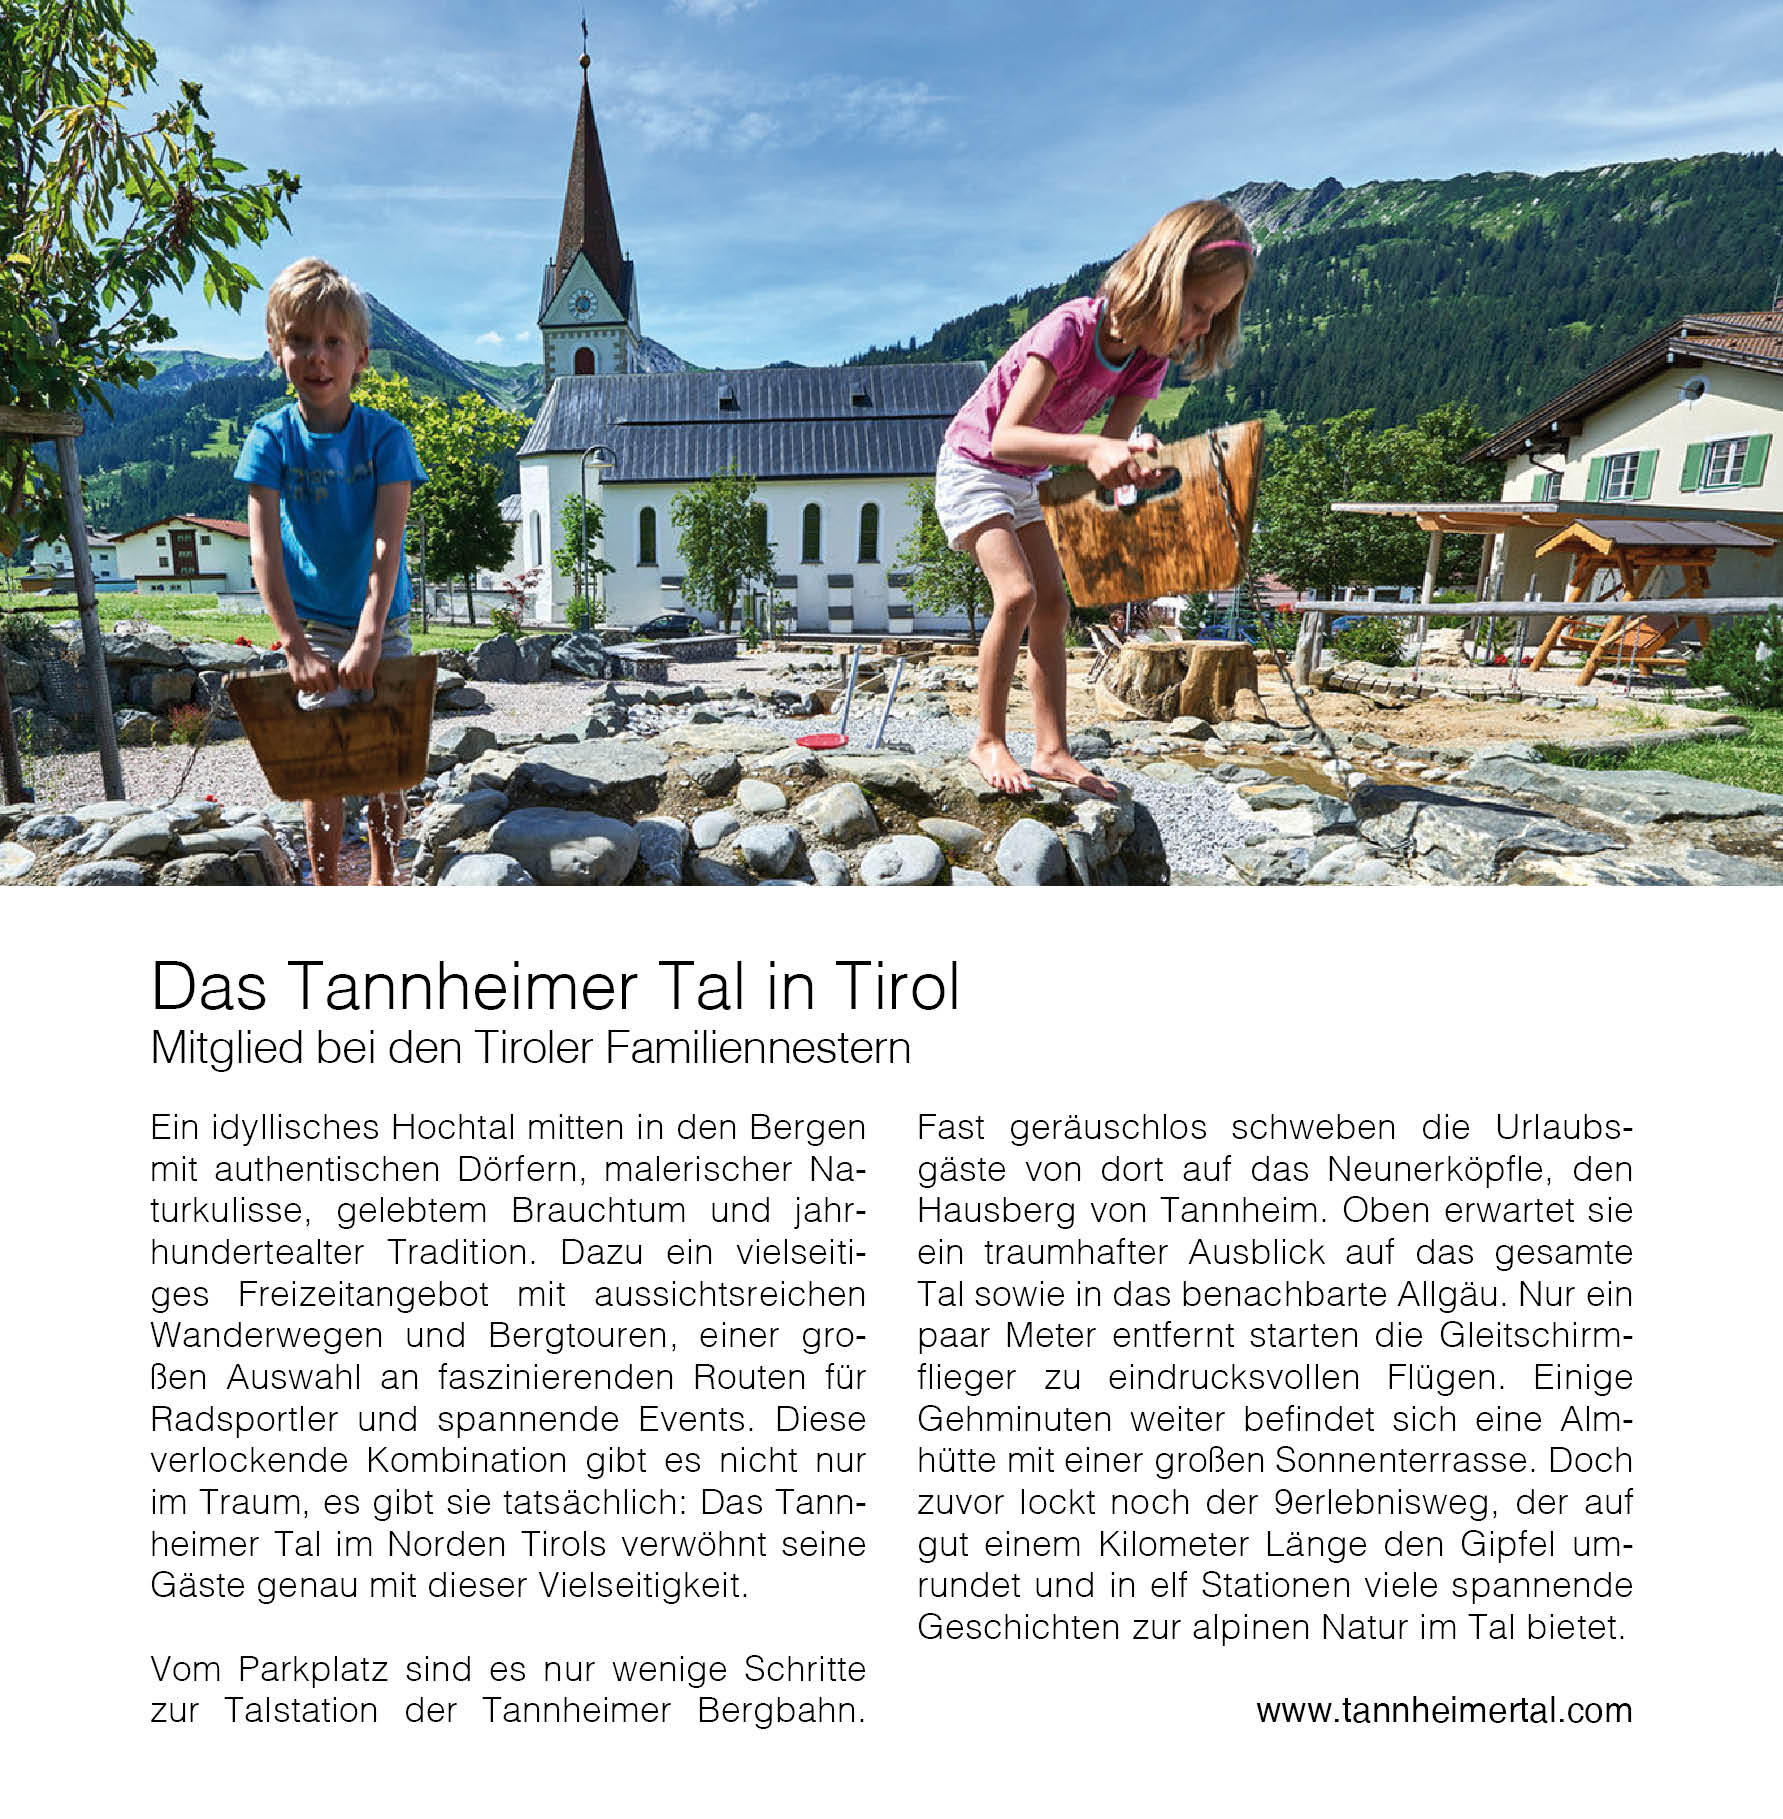 http://www.berge-exclusiv.de/wp-content/uploads/Pocket-Guide-18041646.jpg